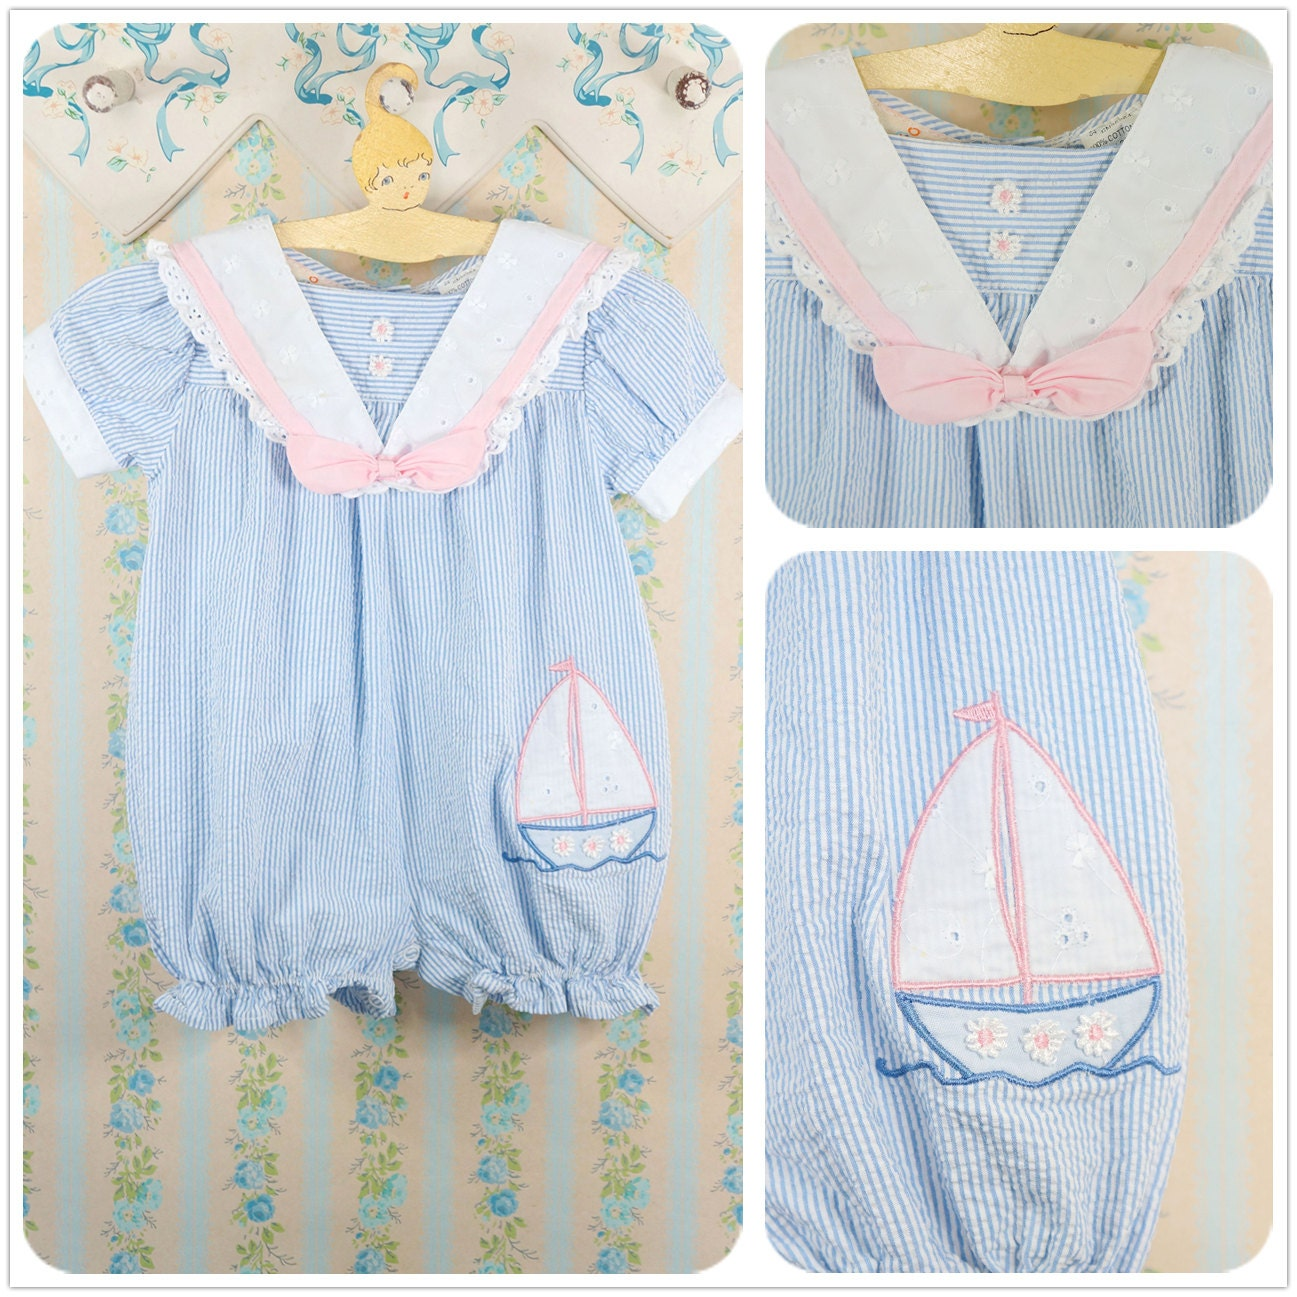 Buy low price, high quality sweet baby clothes with worldwide shipping on tennesseemyblogw0.cf